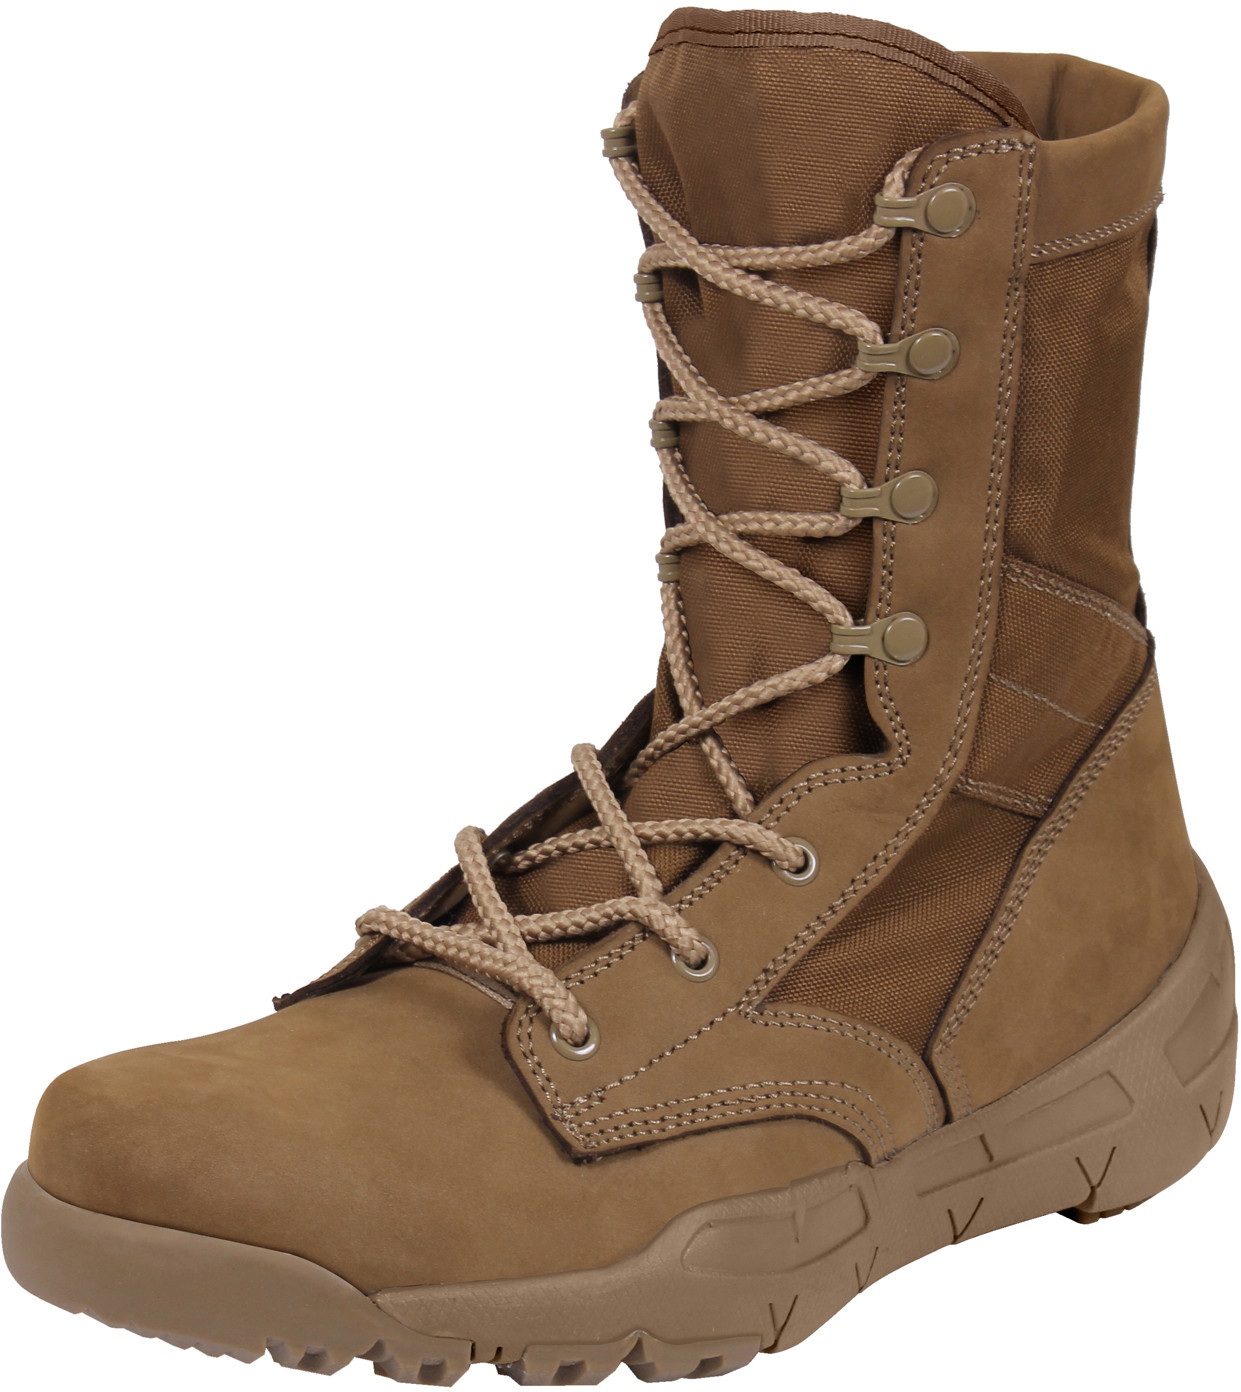 Coyote Brown AR 670-1 US Army V-Max Lightweight Tactical Boots ff6d8d82f23